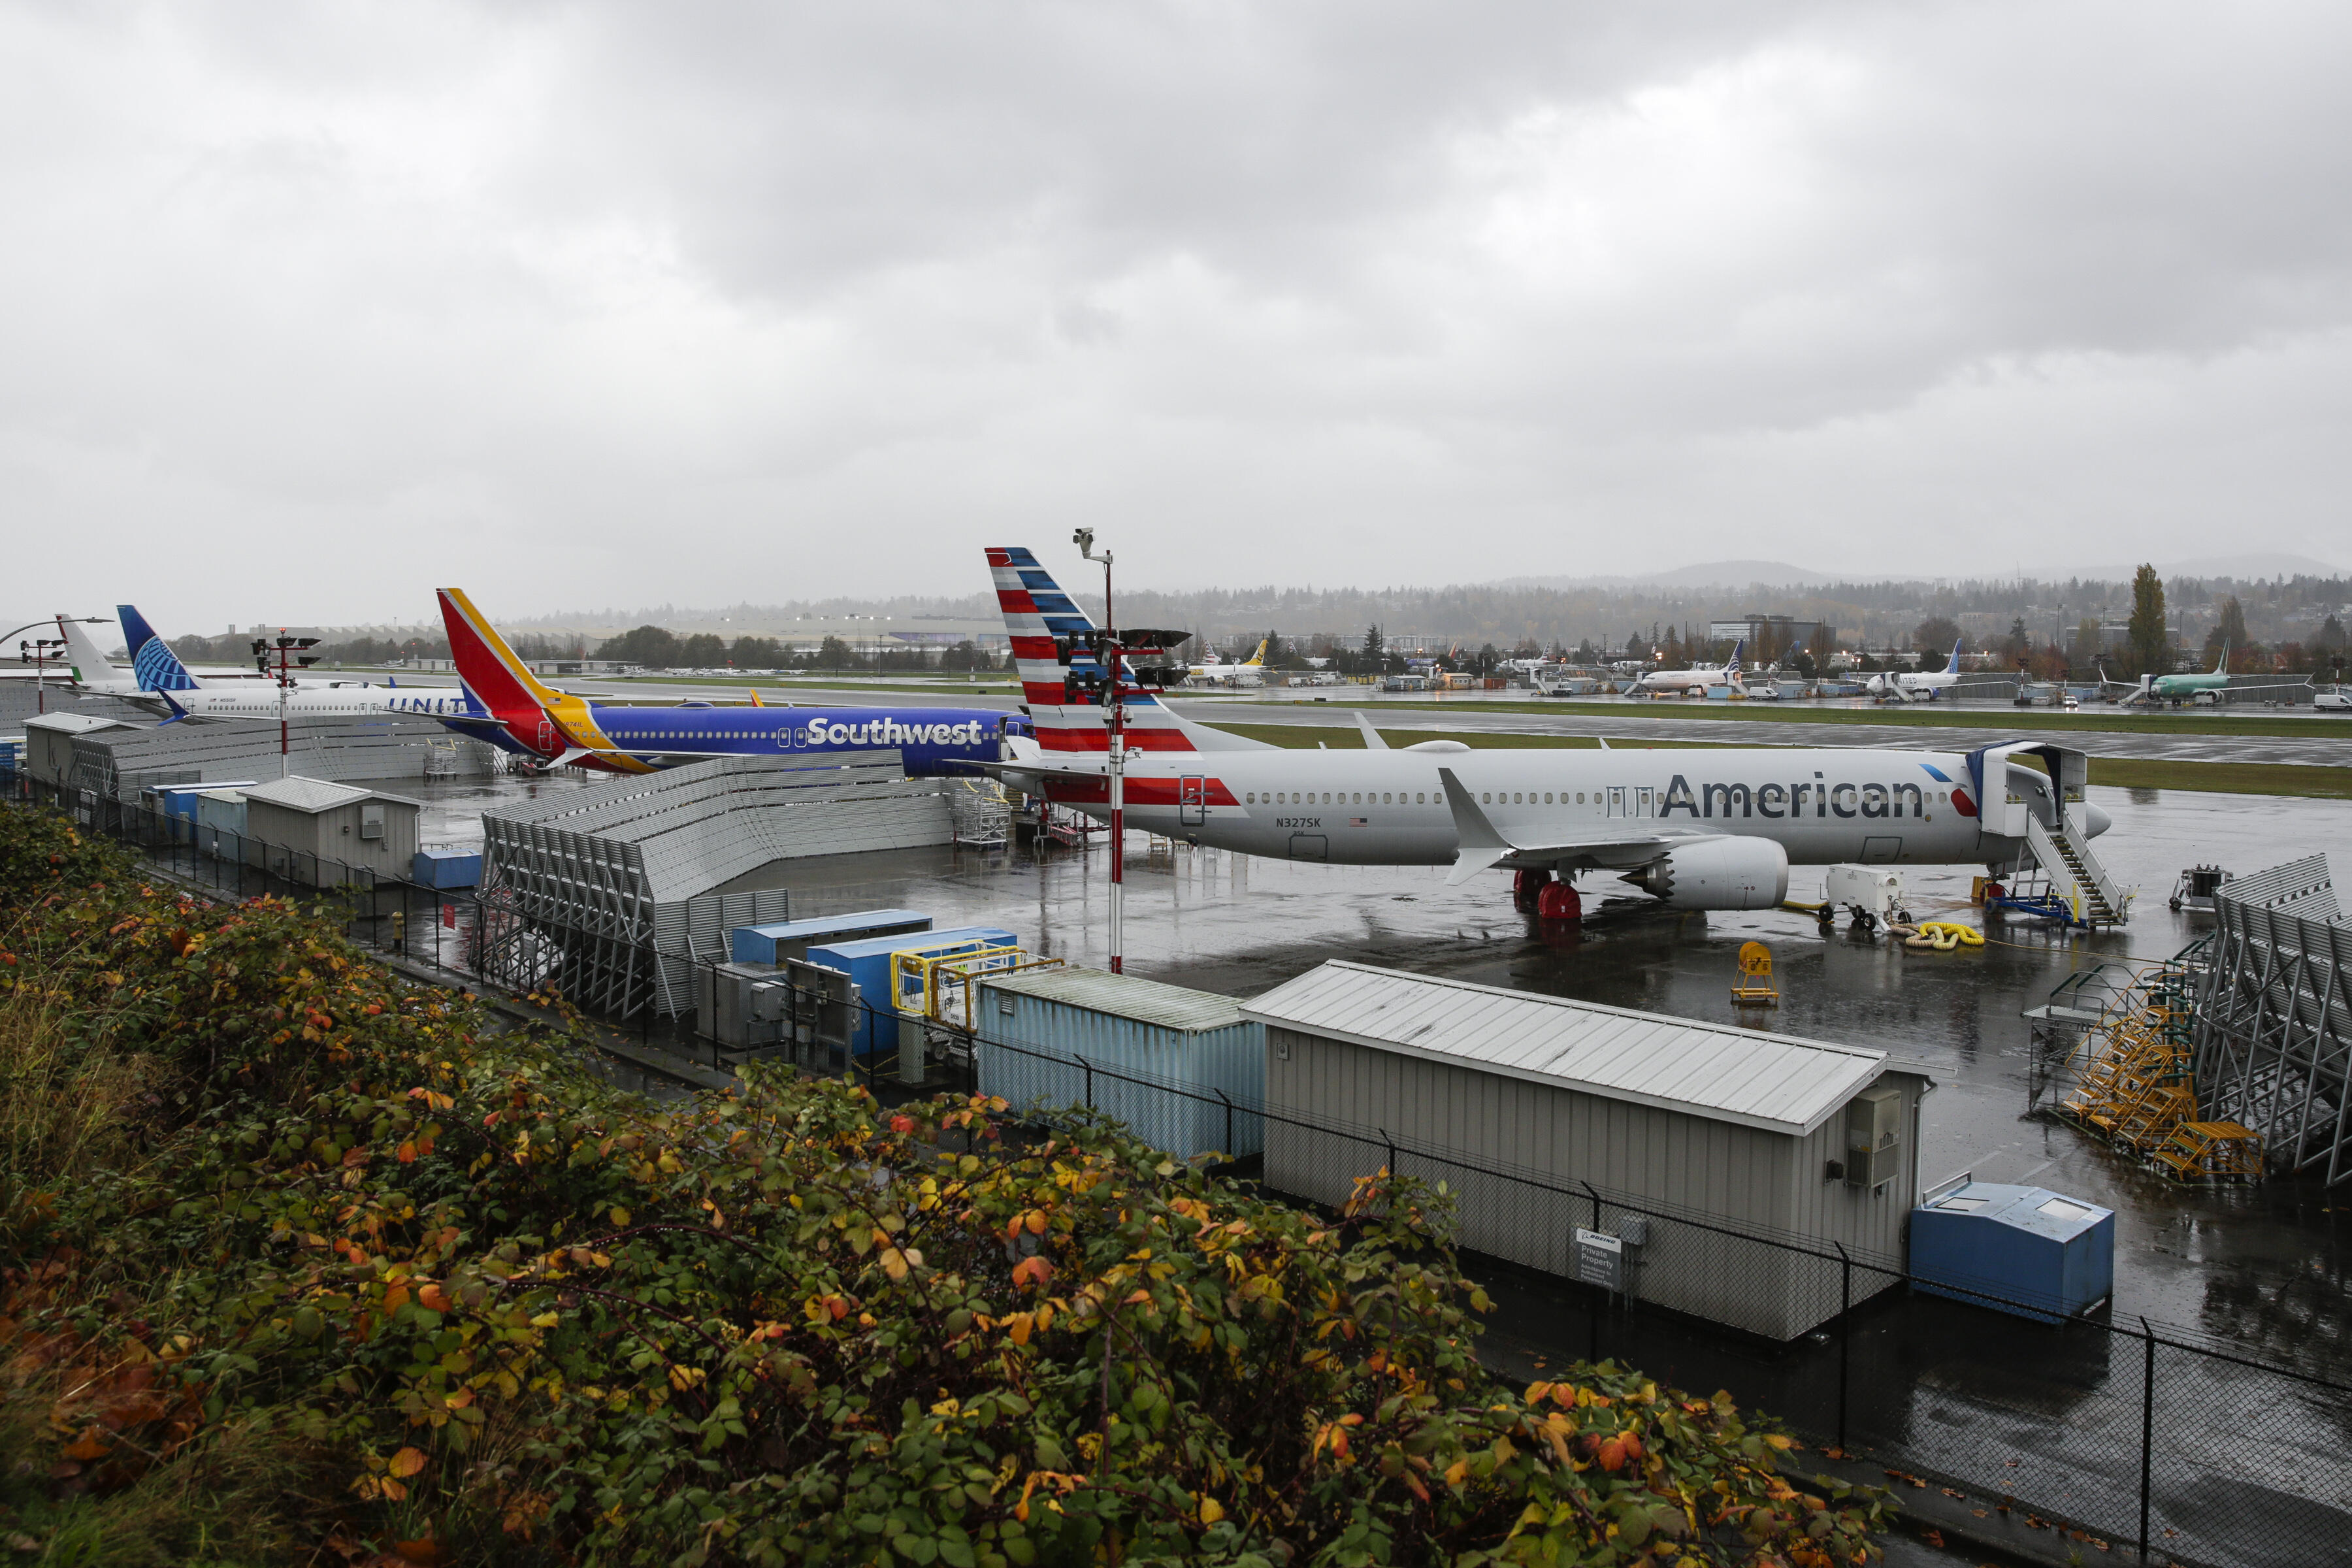 737 Max aircraft painted in American, Southwest and United liveries